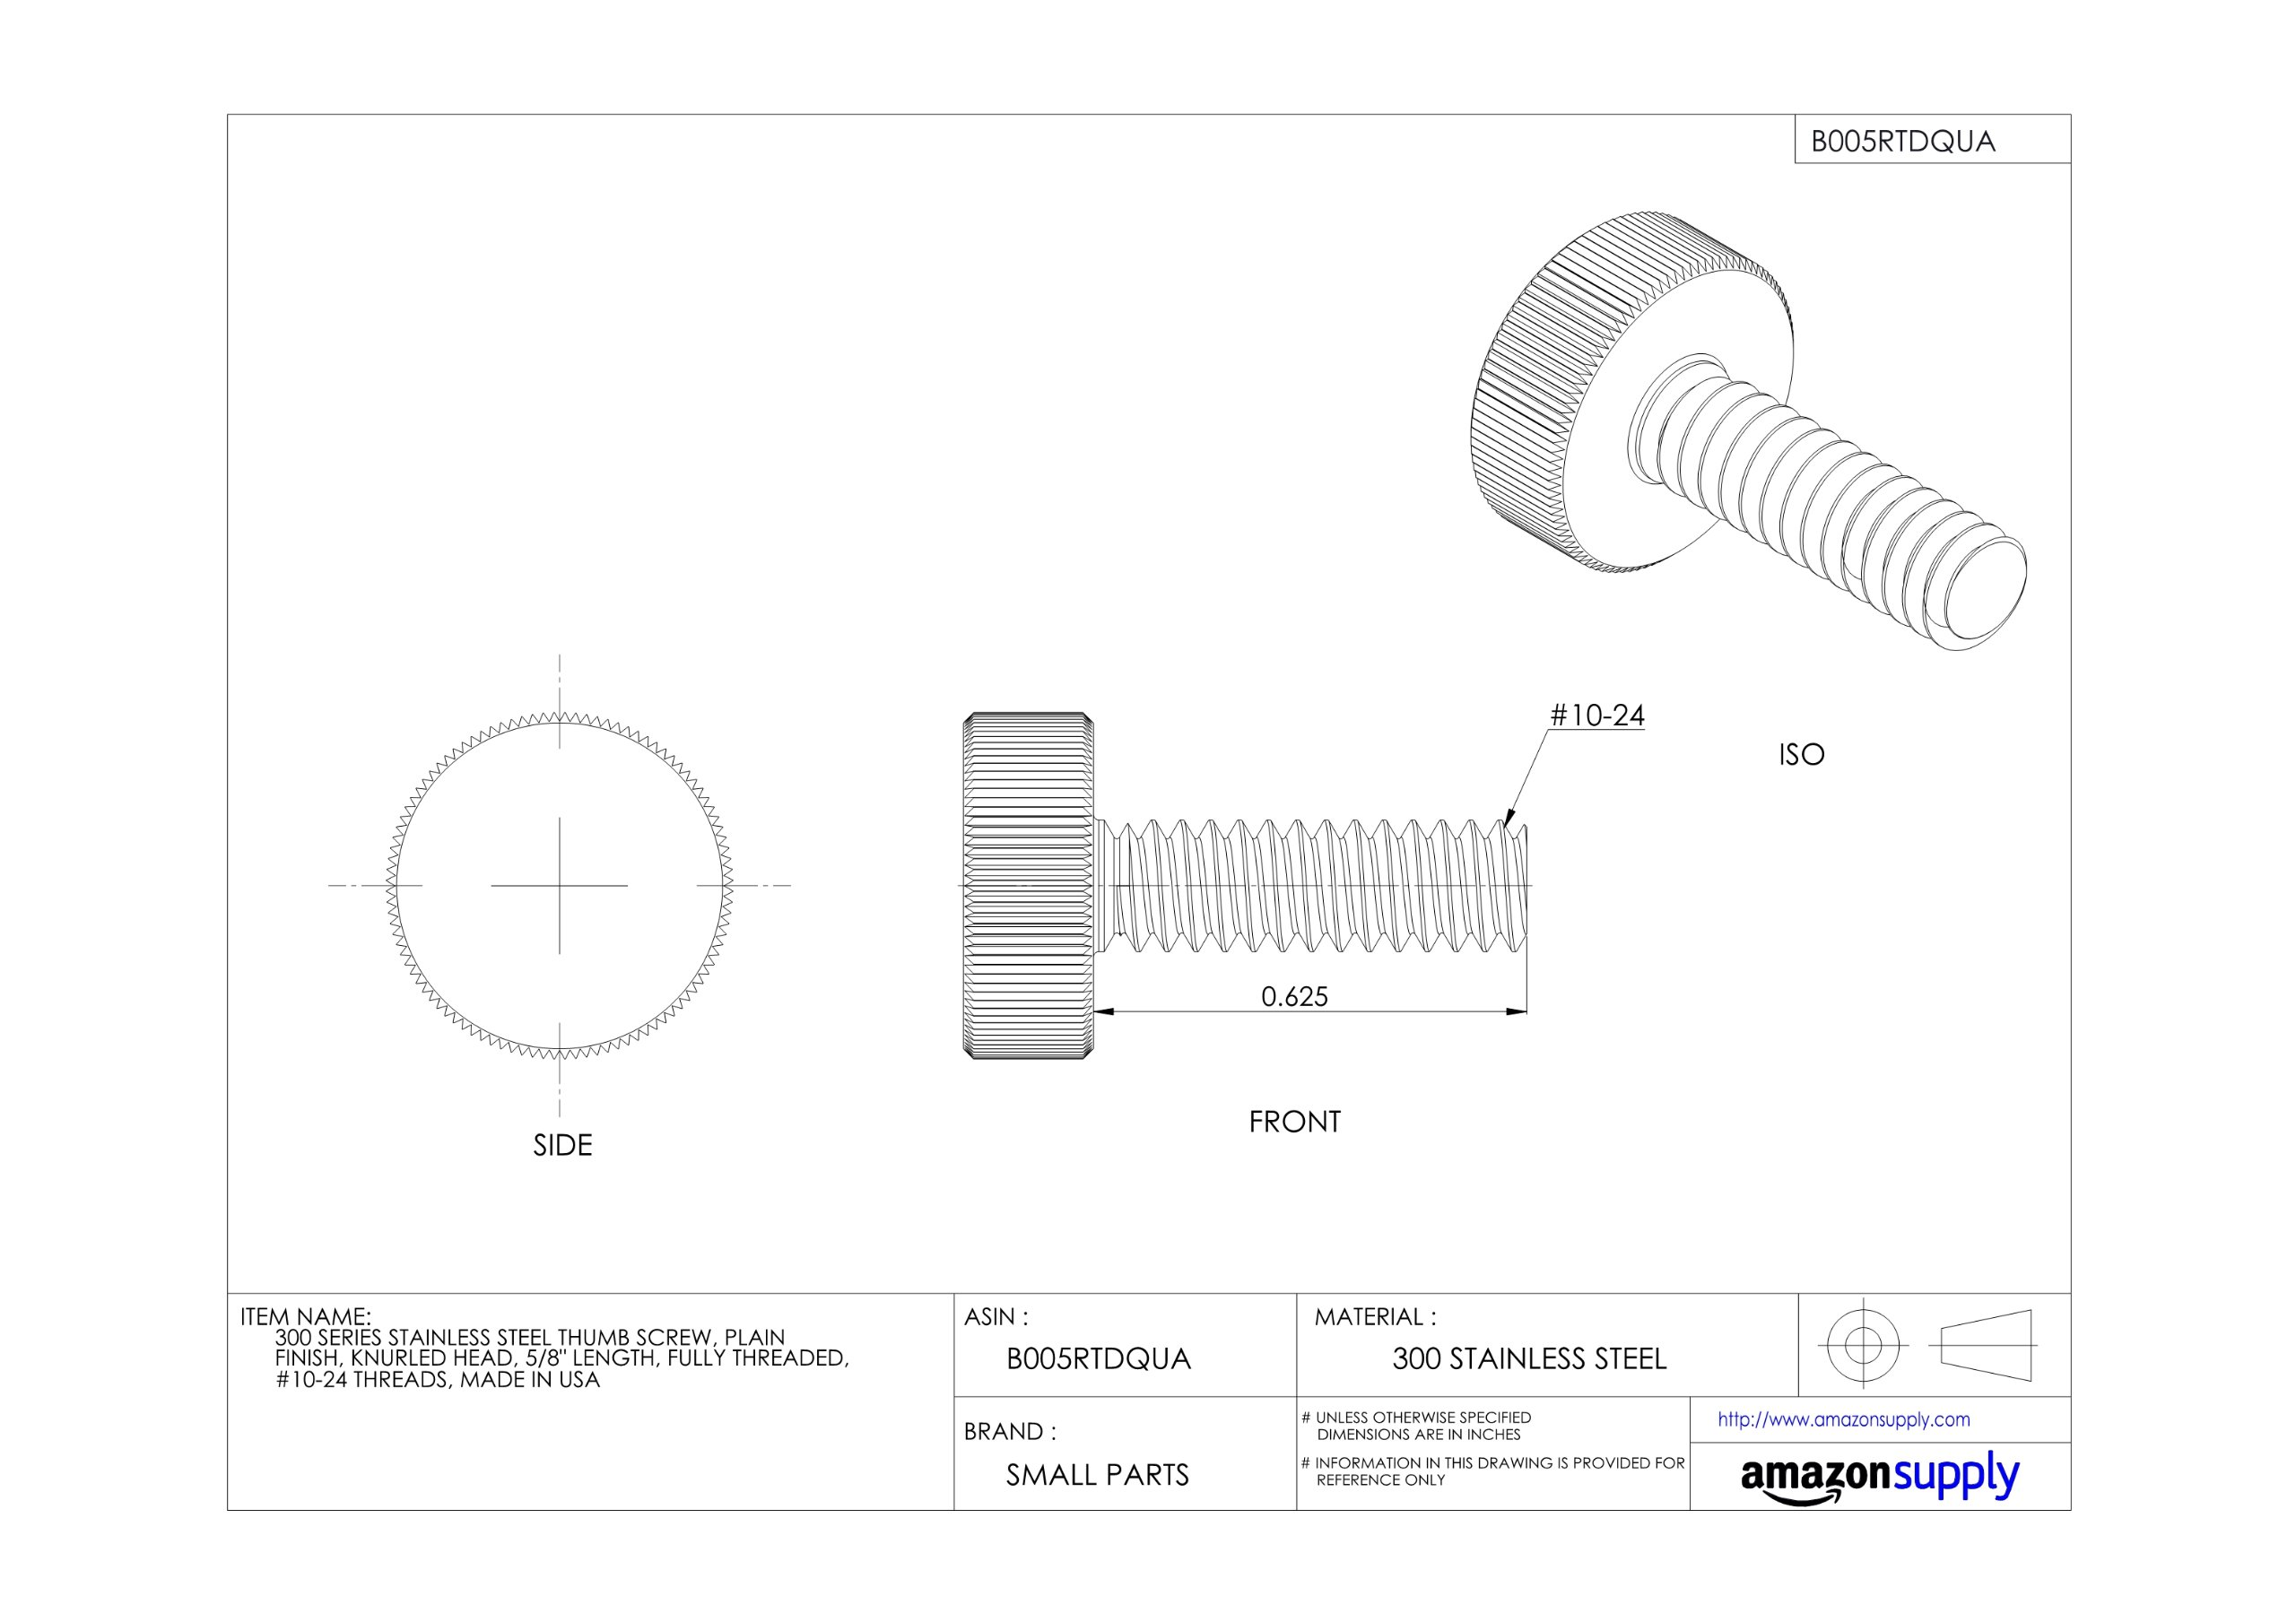 300 Series Stainless Steel Thumb Screw, Plain Finish, Knurled Head, 5/8 Length, Fully Threaded, 10-24 UNC Threads, Made in US